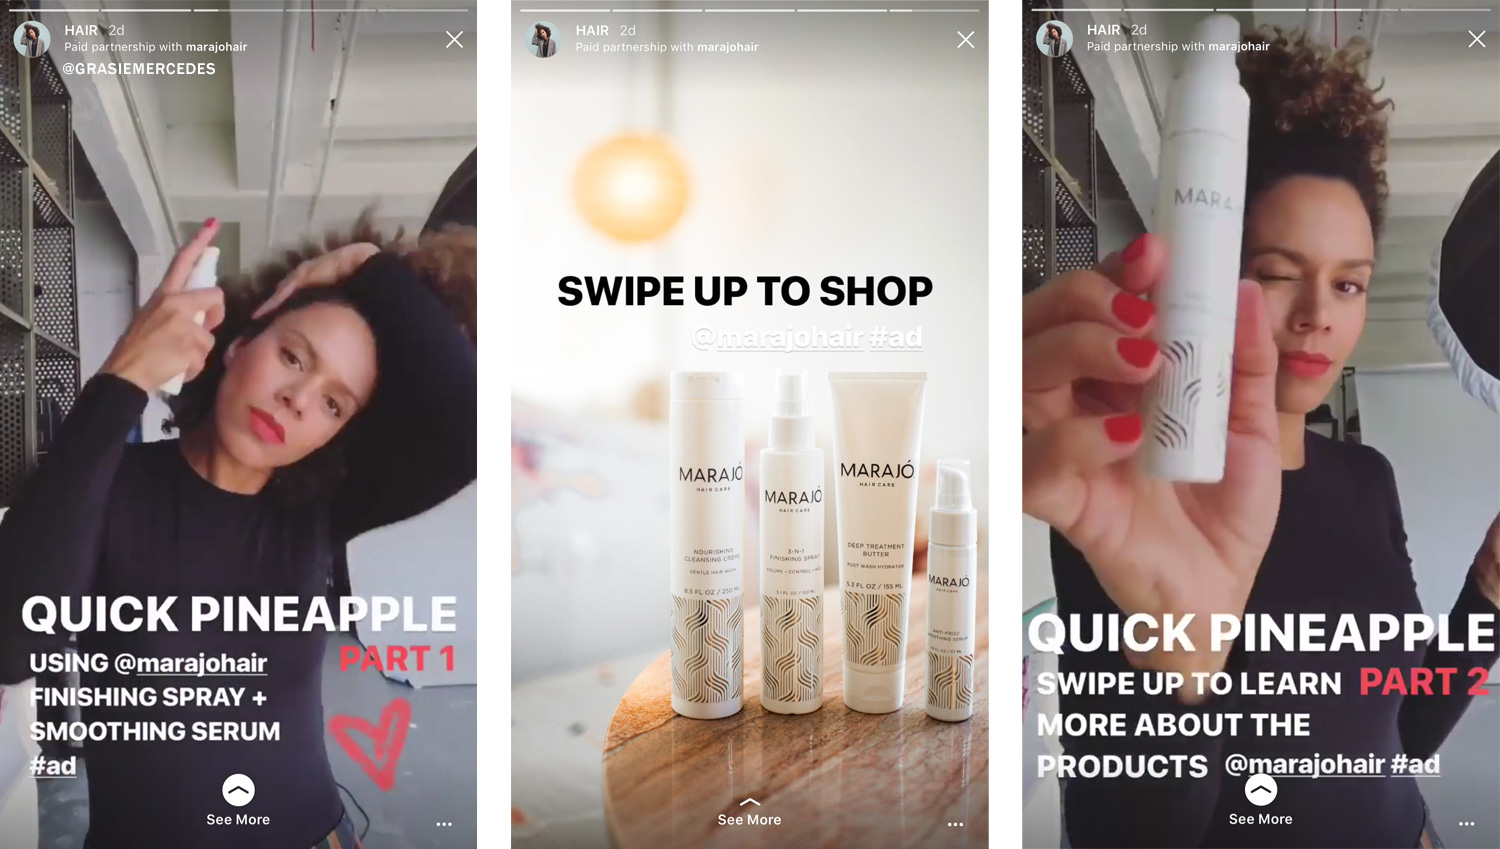 Five Easy Ways To Drive Traffic & Sales From Instagram - Planoly Blog - Stories